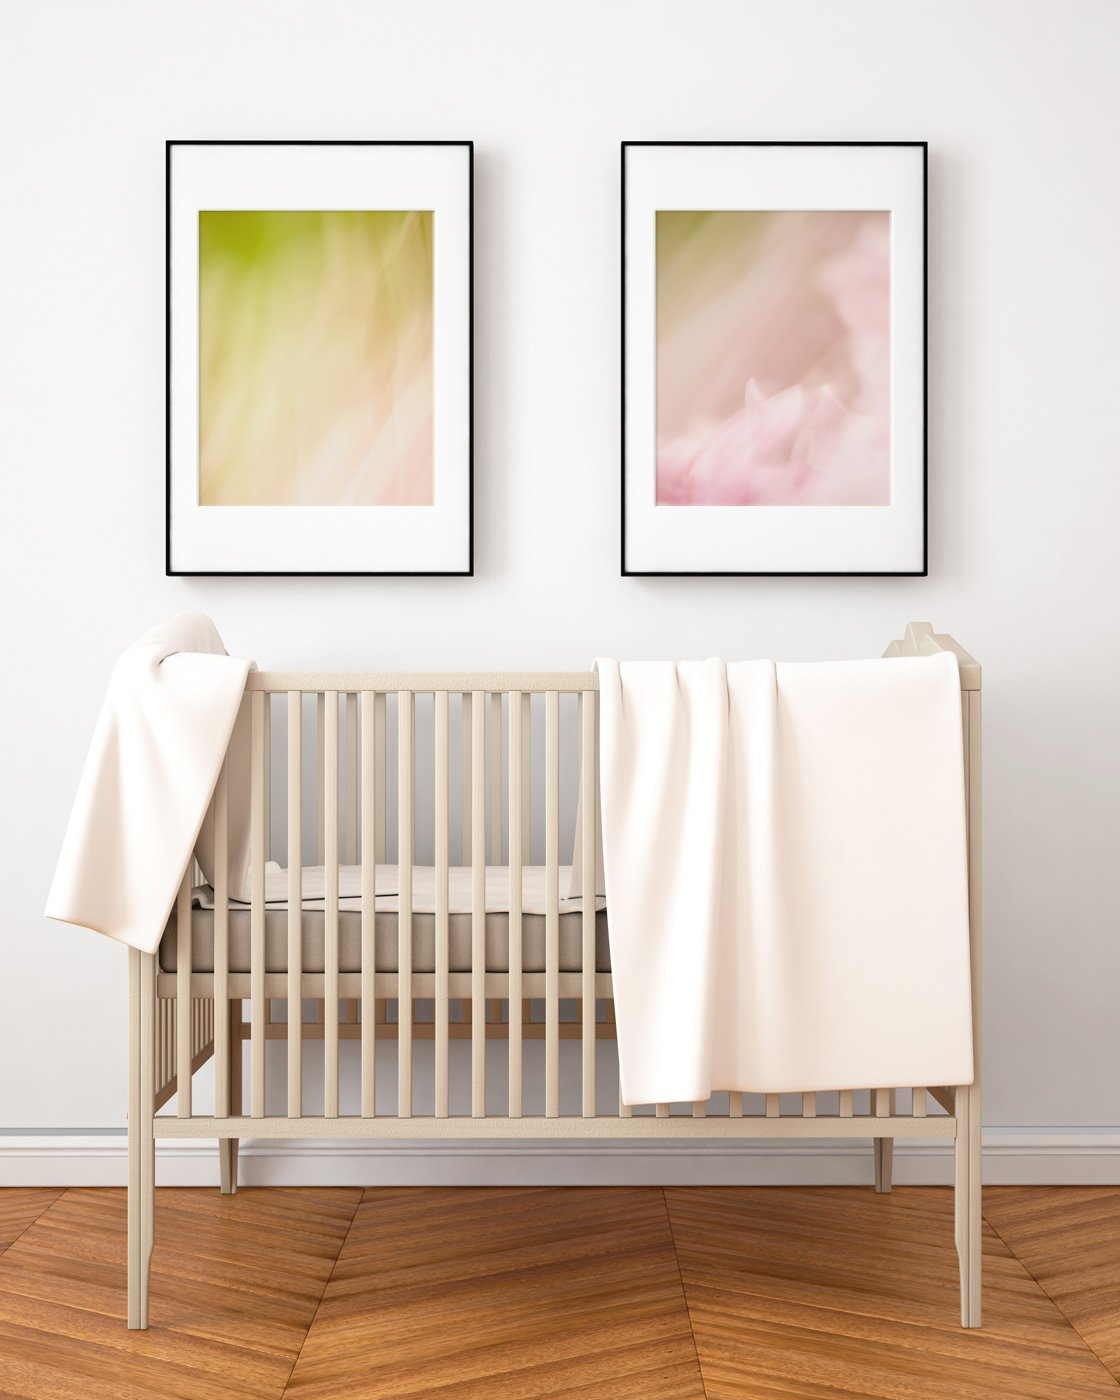 Modern nursery wall decor hailey jennifer squires for Modern nursery decor